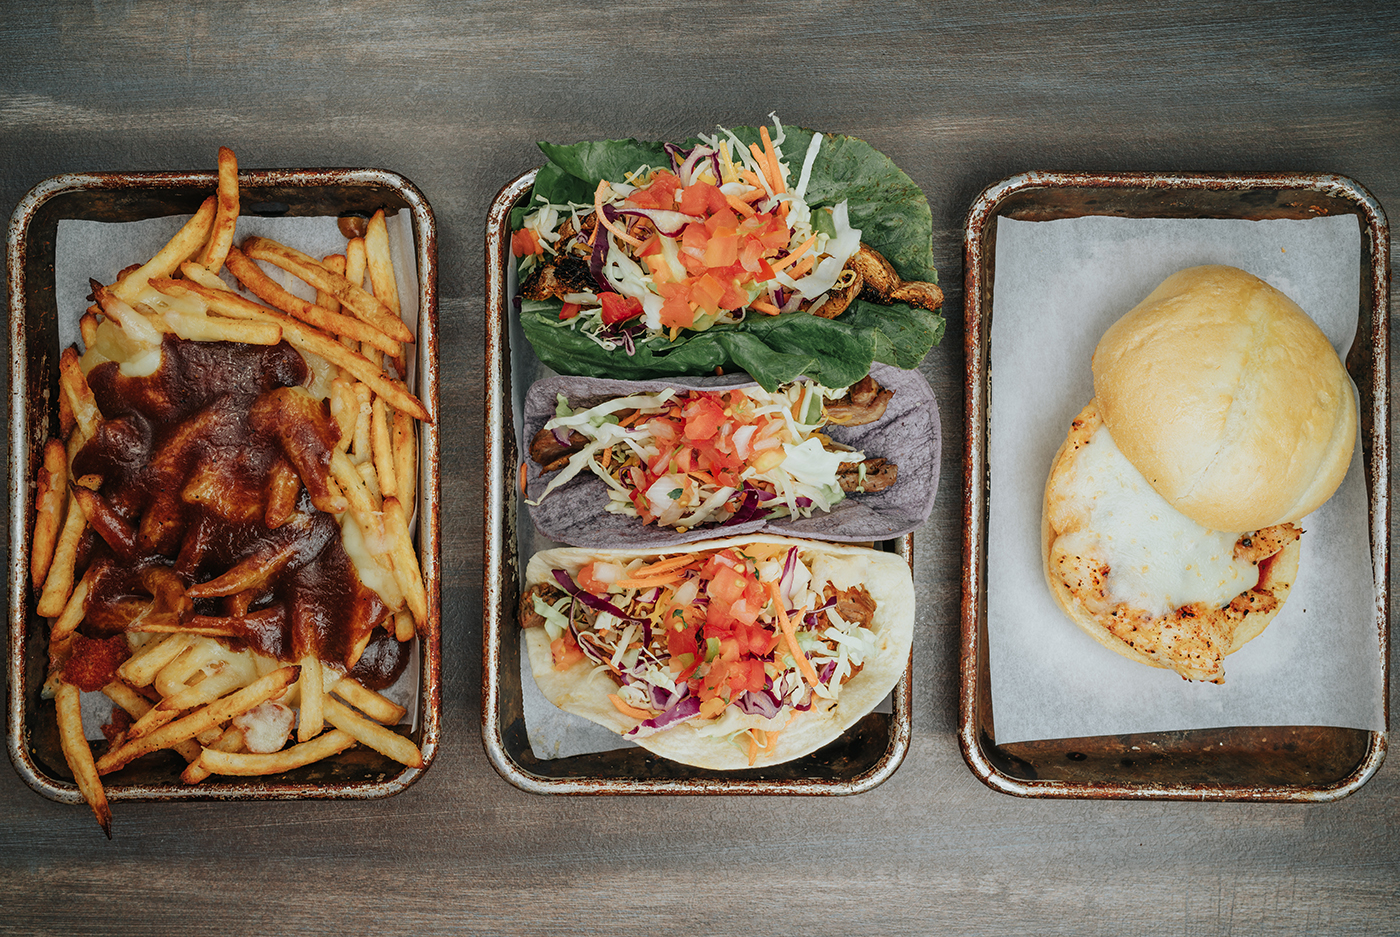 (L-R) Diversion Eatery's Poutine Fries, Taco Mix and Parma Pollo exhibit the large range of menu items the restaurant has to offer.